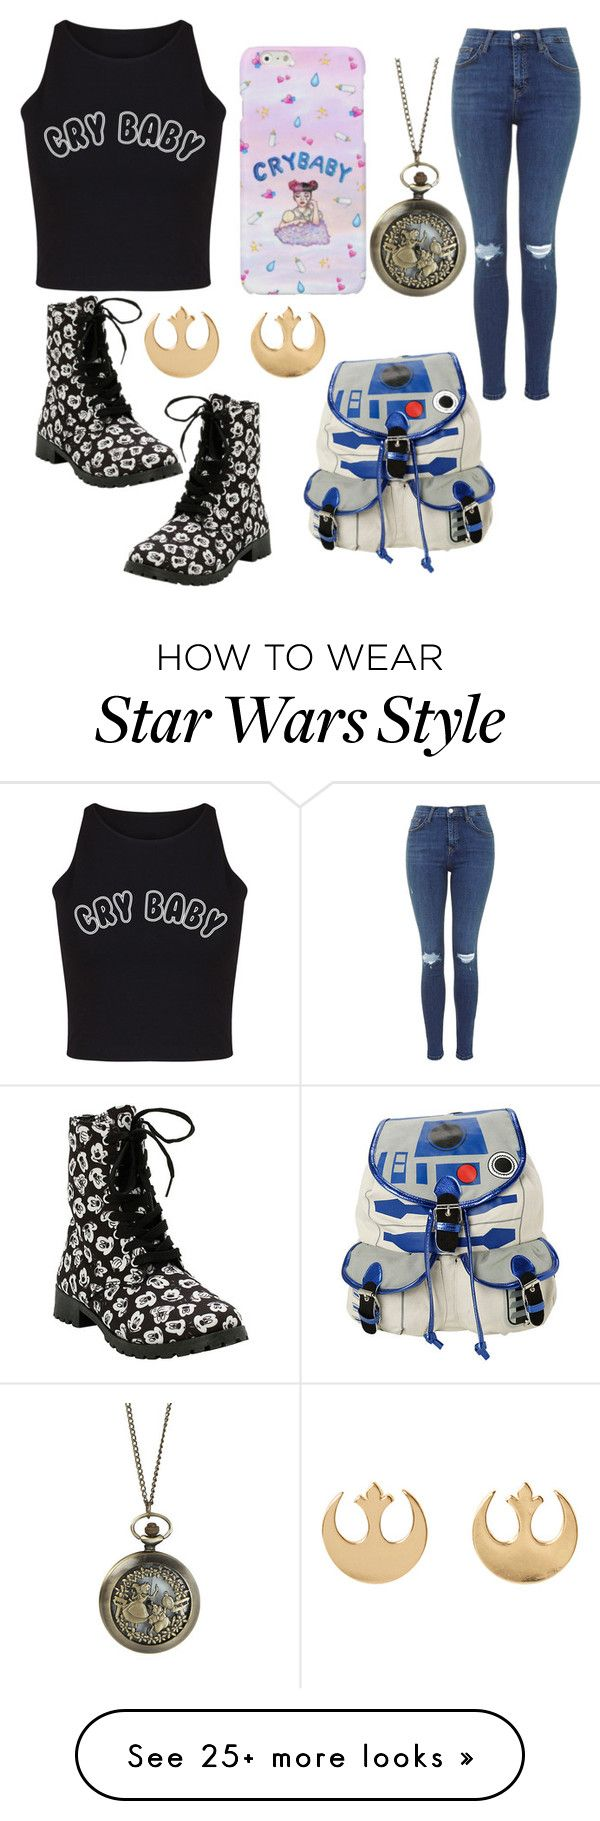 """""""day #1"""" by my-outfits-daily on Polyvore featuring Disney and R2"""